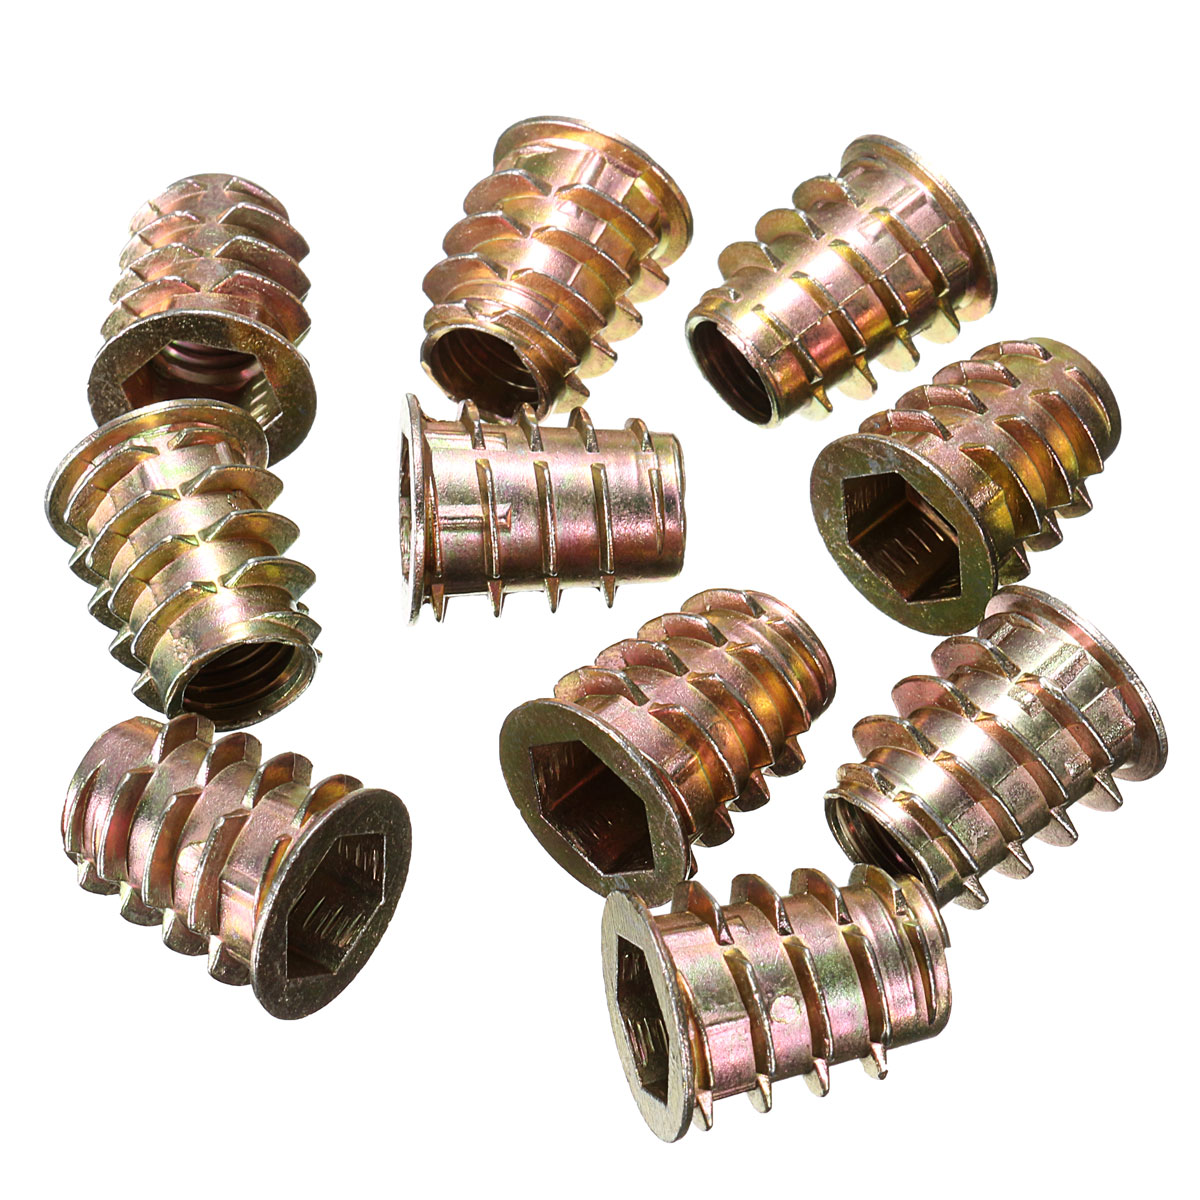 10Pcs M4 M5 M6 M8 M10 Type D Hex Drive Screw In Threaded Insert Bushings For Wood D-Type Insert Nuts